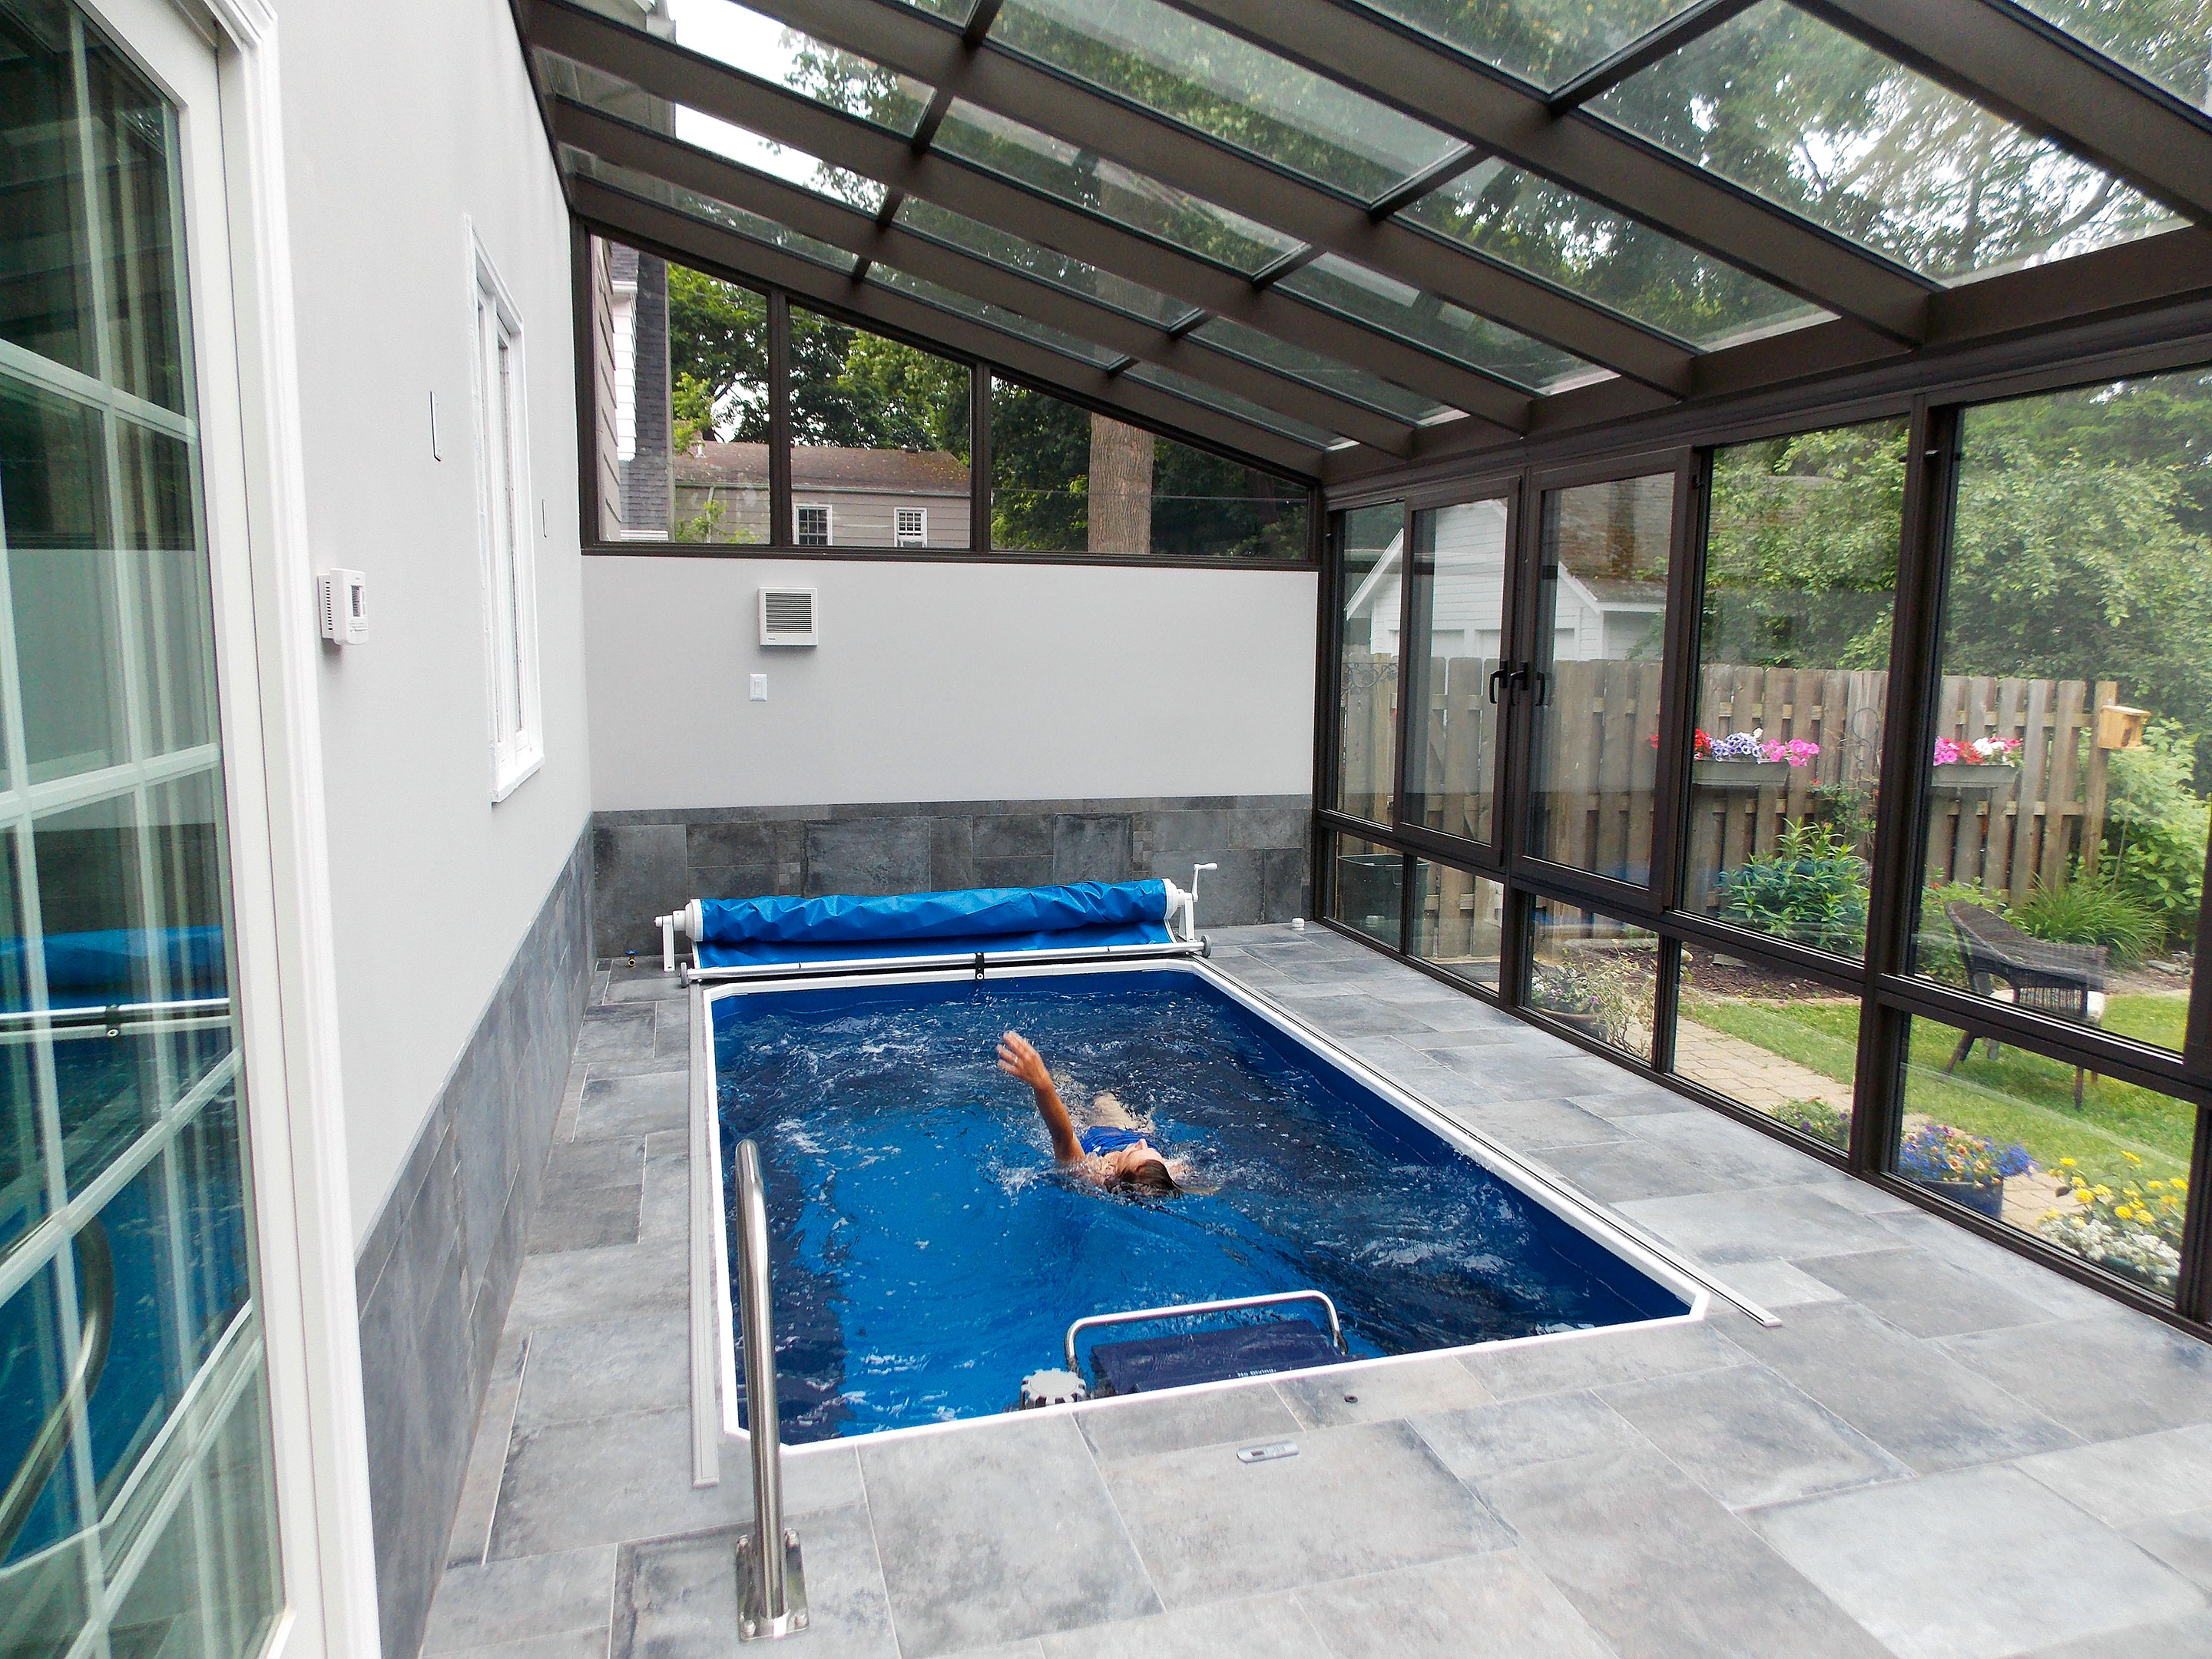 Swim all winter                                                  $24,000+                                                  With a price tag well into the six figures, installing a traditional indoor pool is going to remain a fantasy for the vast majority of us. But there are options. Swim spas—which resemble oversize hot tubs and can be installed without any ground excavation—start at $12,000 and range up to $20,000 for models with a motor to create a current you can swim against. One caveat: Spas are typically made from a single, large piece of fiberglass, meaning unless you're planning new construction or have a barn or porch to enclose the unit, fitting it into your home can be a problem.                                                  One alternative, built by Endless Pools of Aston, Pa., comes in separate pieces that can be assembled inside an existing room. The seven-by-12-foot model with swim motor costs $23,900, although that doesn't include $800 to $1,800 for shipping and another $2,000 if you want an independent contractor to help you install it, says retail sales manager Janet Luther.